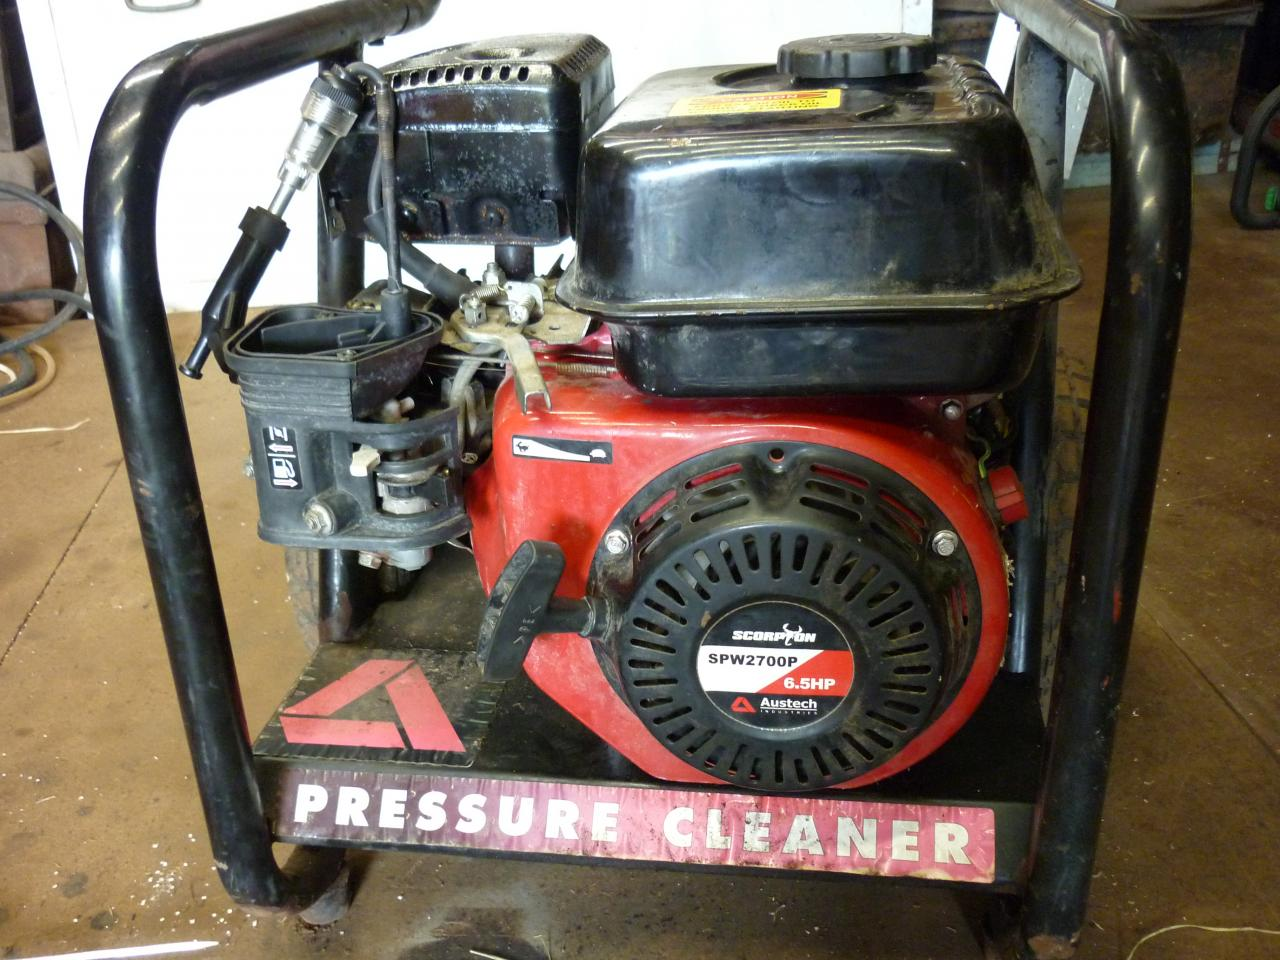 65 Hp Scorpion Pressure Cleaner 2500psi Outdoorking Repair Forum Gx200 Va2 Engine Jpn Honda Small Cylinder Diagram And Parts Hello First It Is An Sp 2700p The Has 200f Then 07110311702 On Side Of Machine